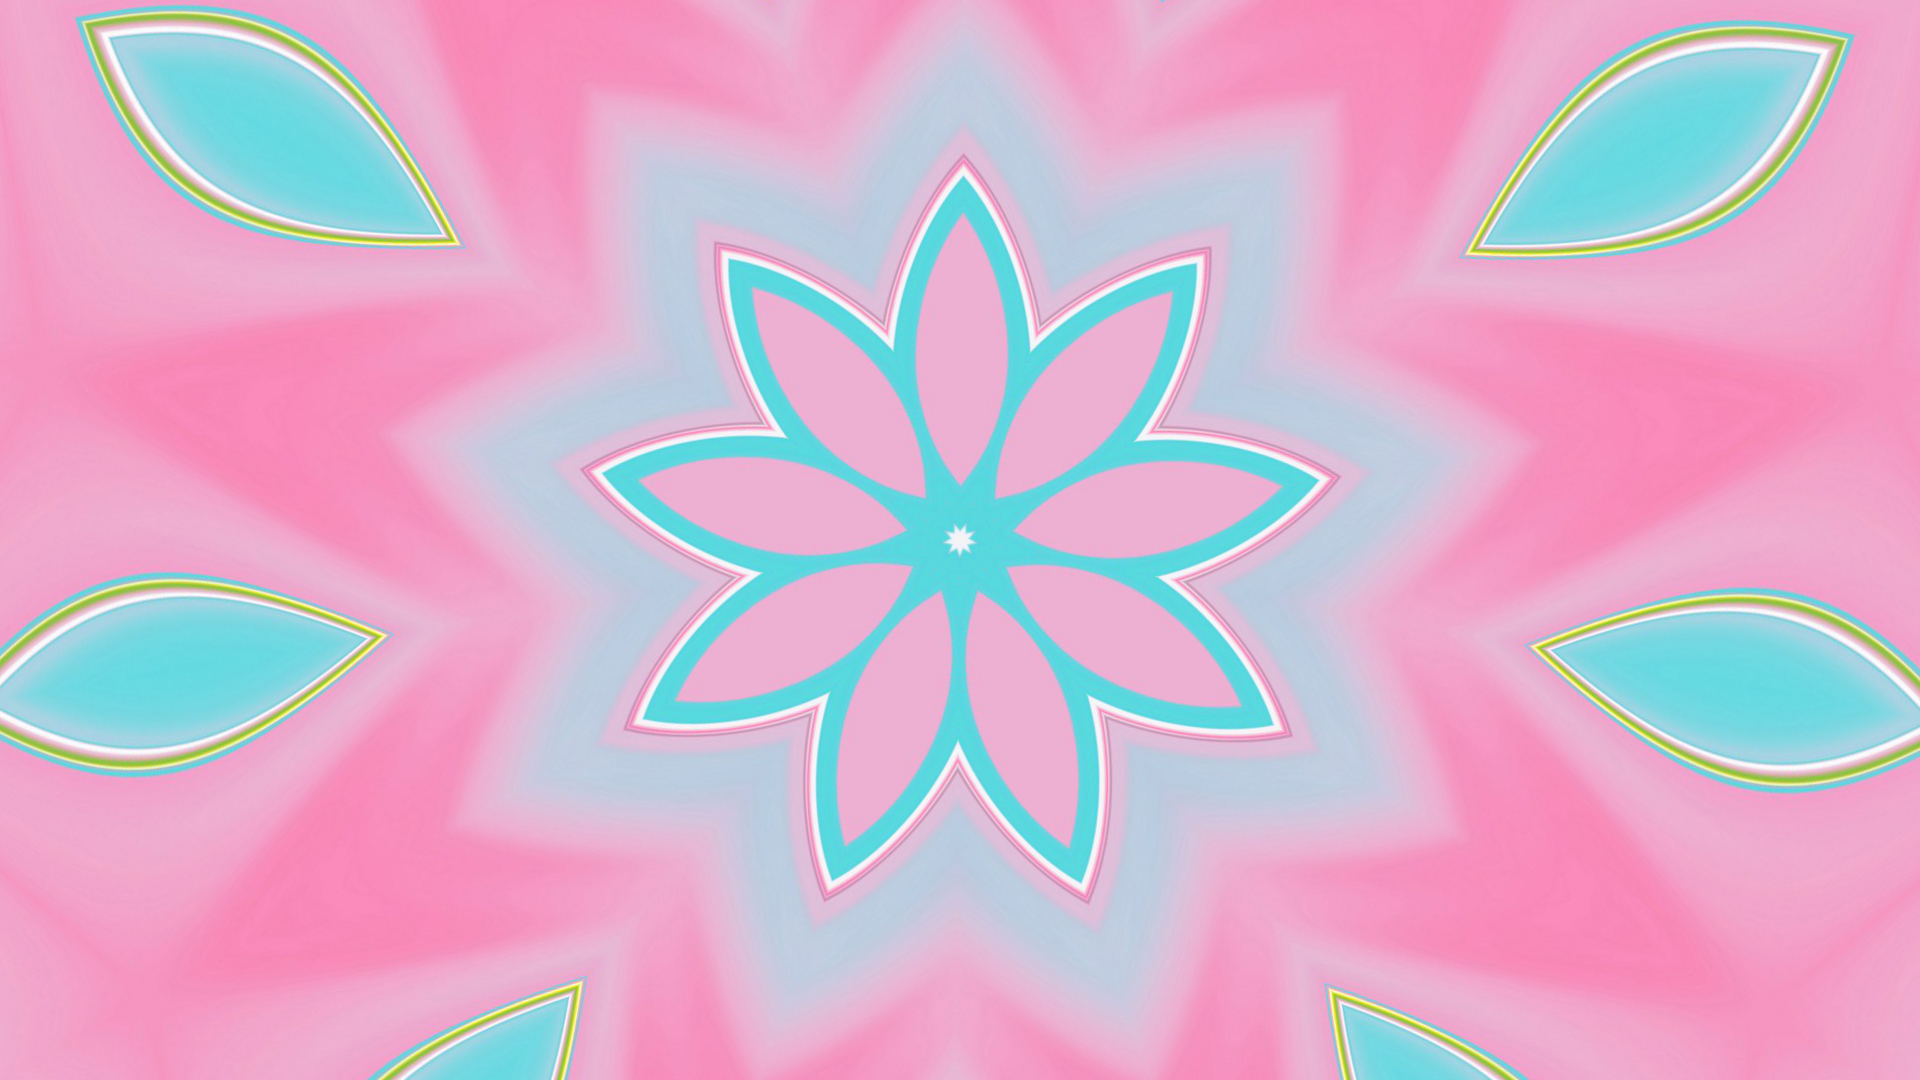 Abstract Artistic Colors Digital Art Gradient Kaleidoscope Pink Shapes 1920x1080